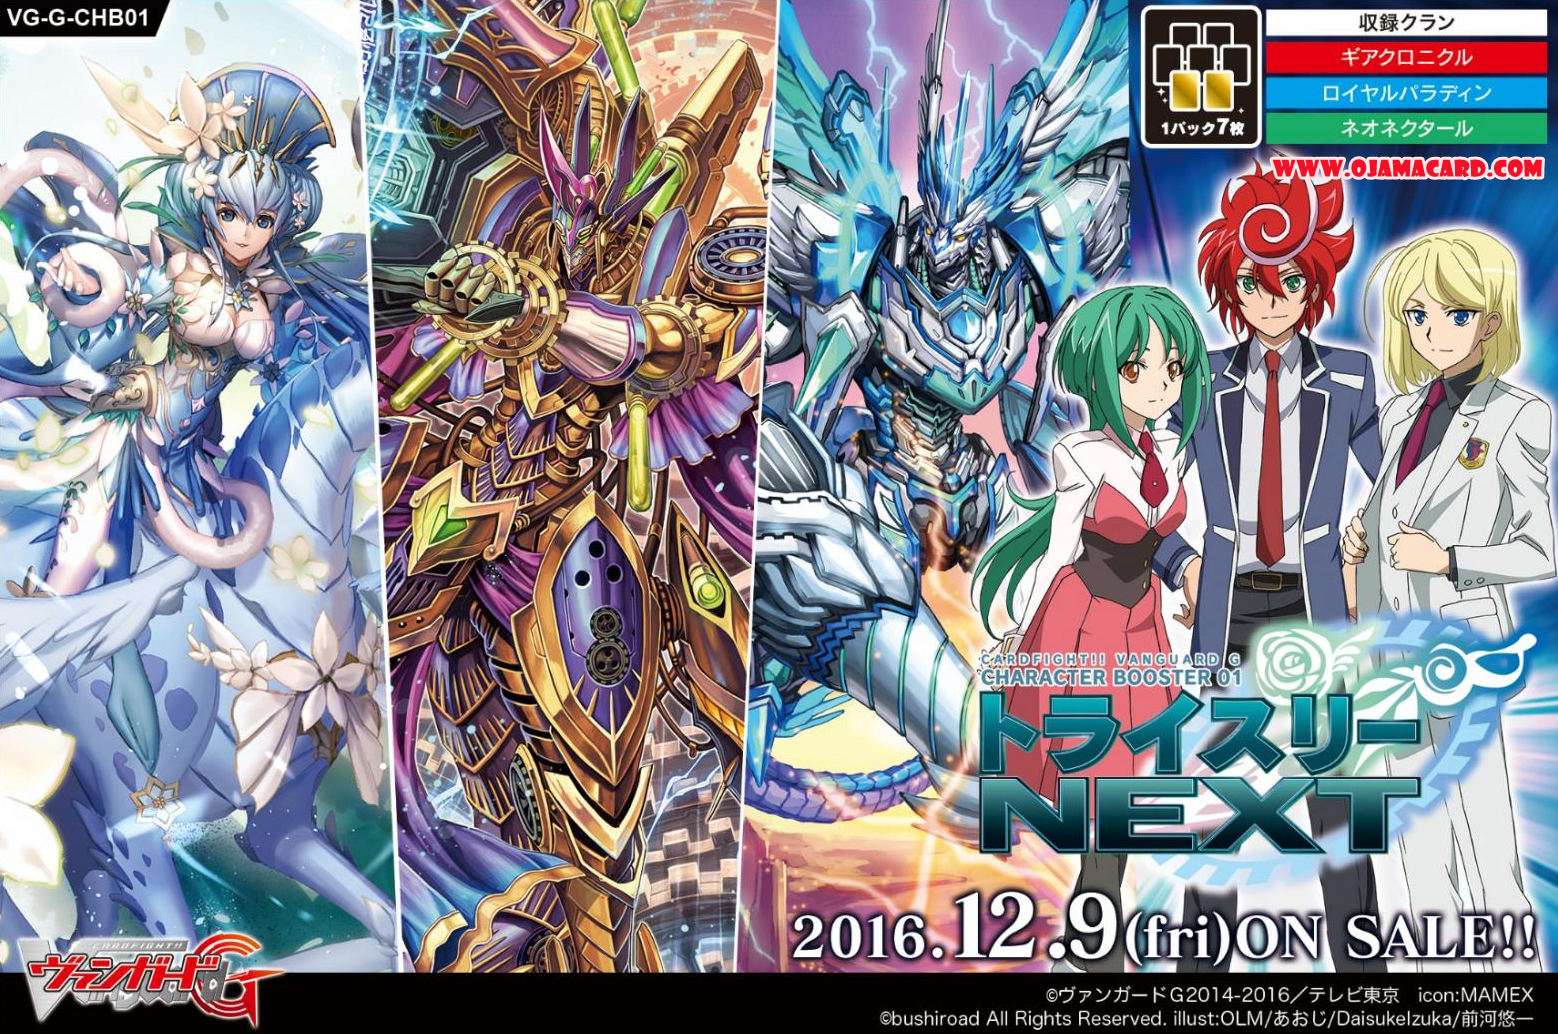 G Character Booster 1 : TRY3 NEXT (VG-CHB01) - Booster Box